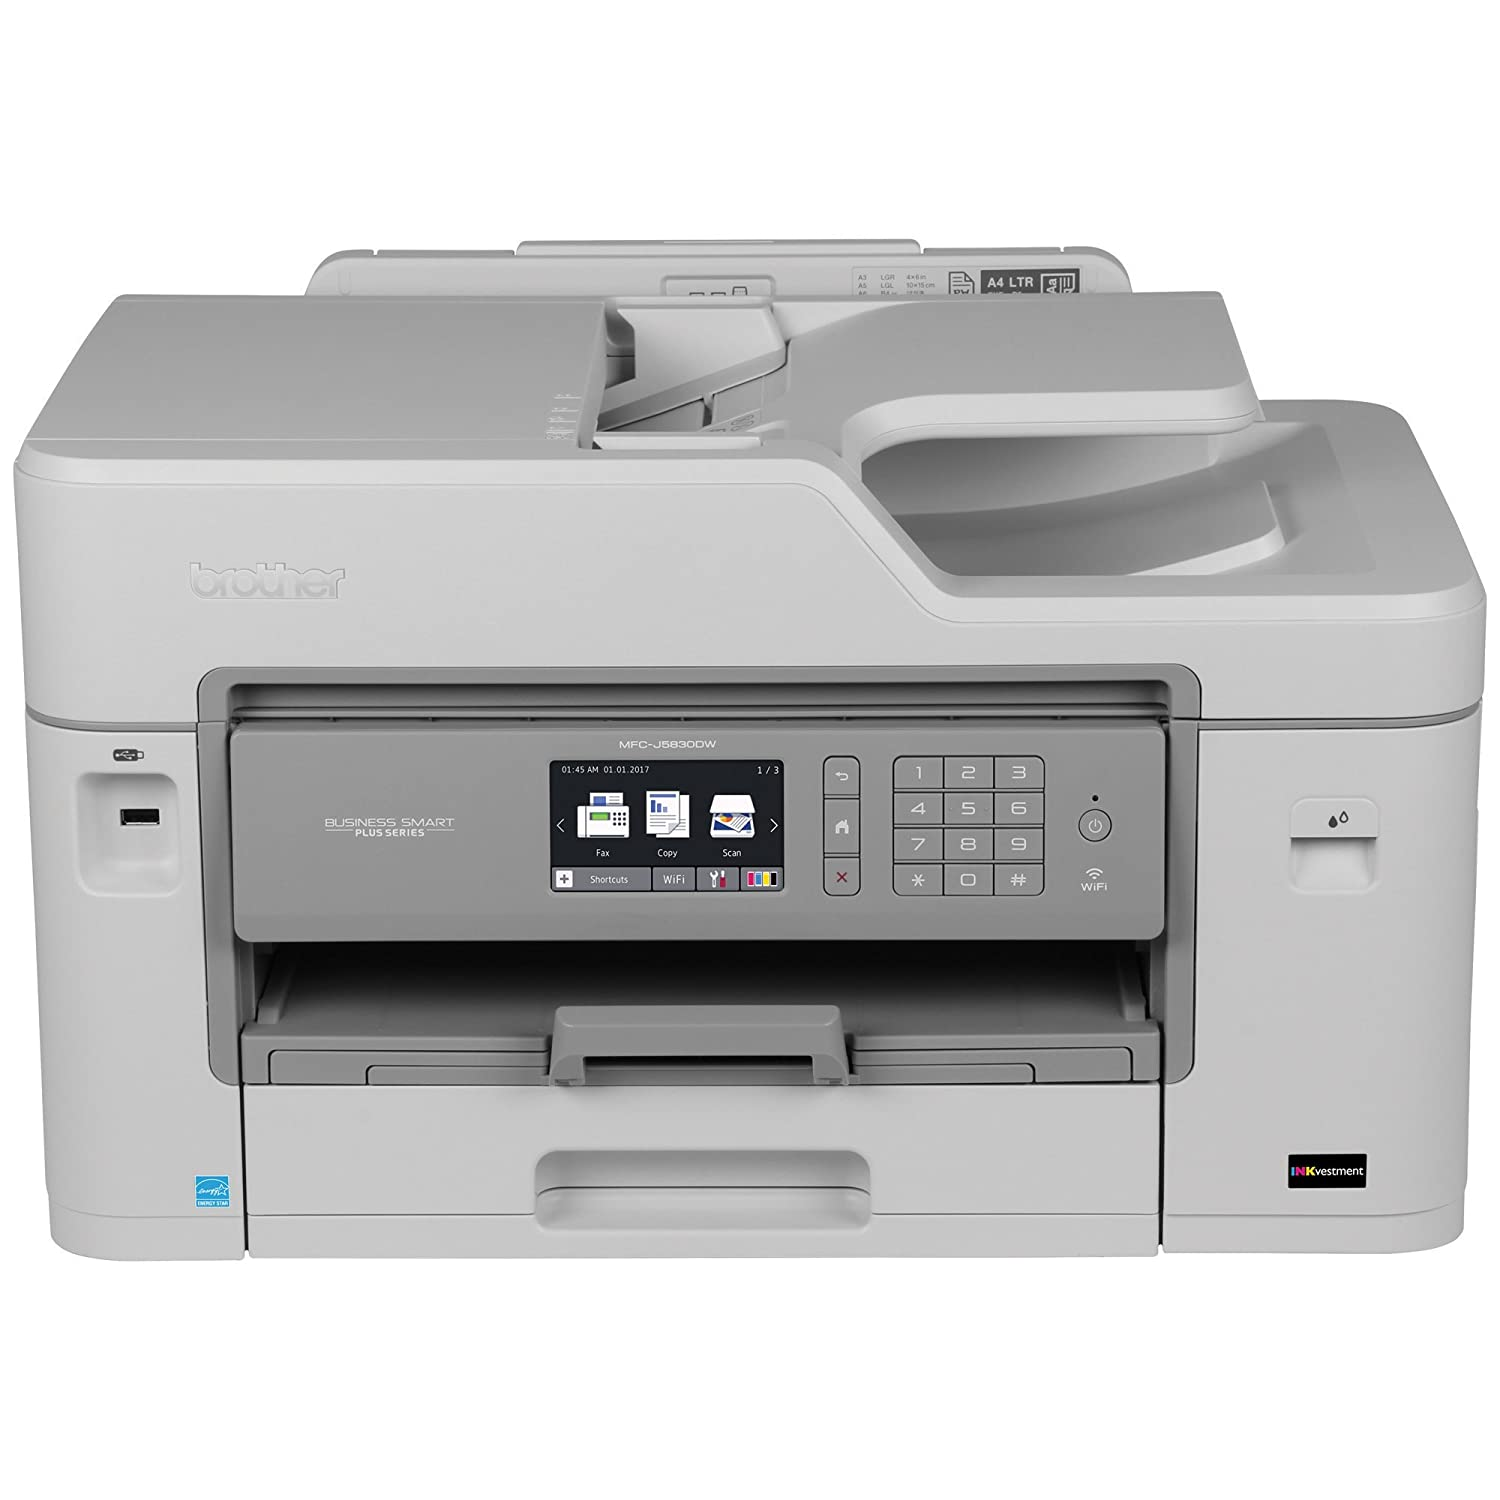 Brother MFCJ5830DW Wireless Color Photo Printer with Copier & Fax Brother Canada - CE